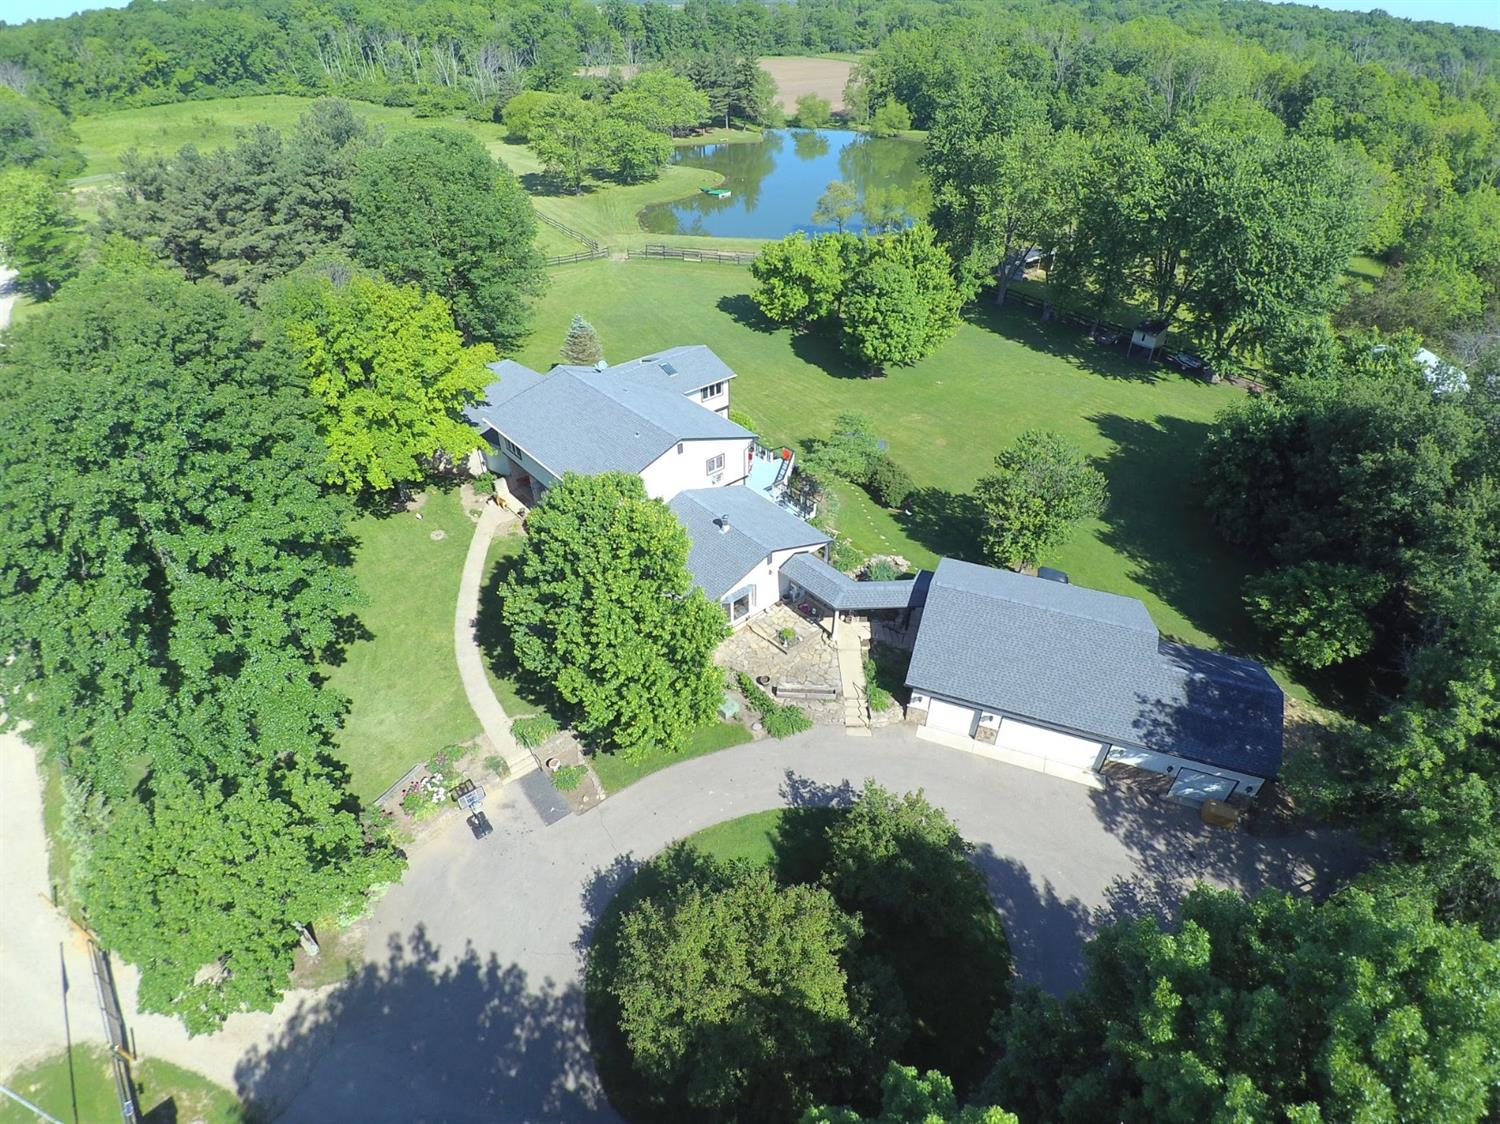 2726 W St Rt 63 Turtle Creek Twp., OH